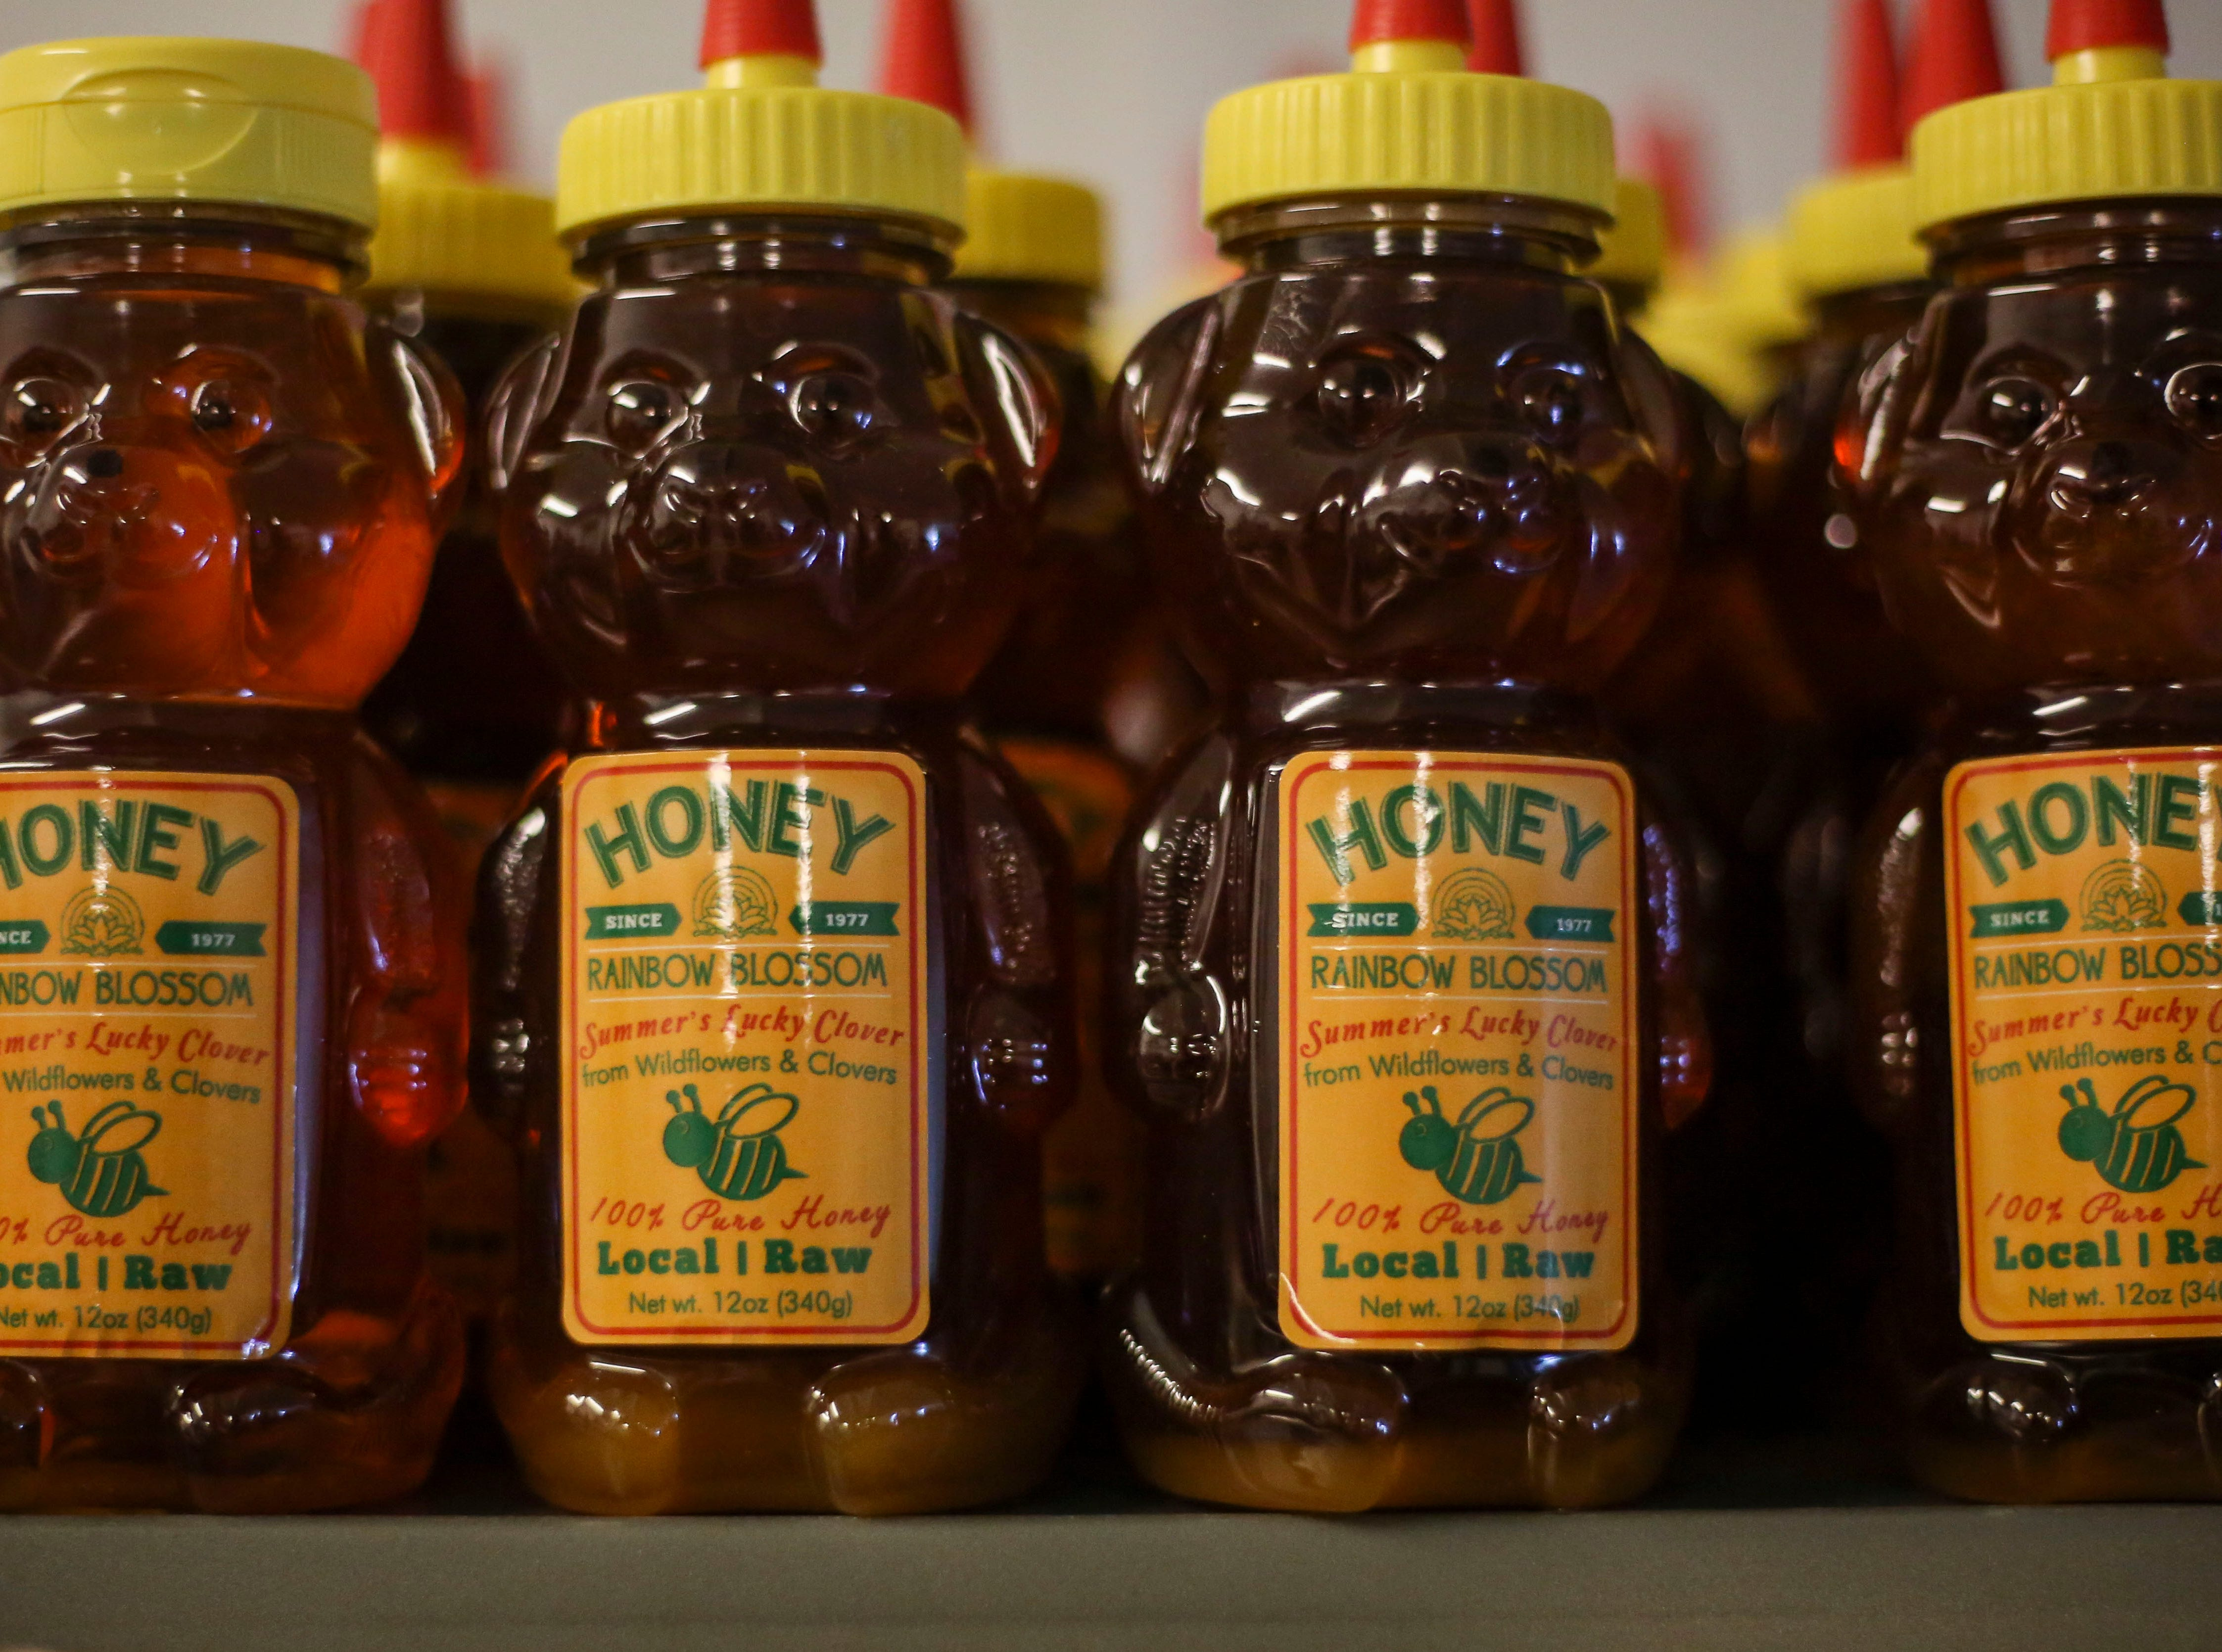 Honey bear jars sit in the warehouse of Hosey Honey, a family owned honey company, in Midway, Ky. on Wednesday, April 3, 2019. The Hosey's Queen's Triple Crown honey is used in the sweetener in the $1,000 Woodford Reserve Kentucky Derby mint julep.